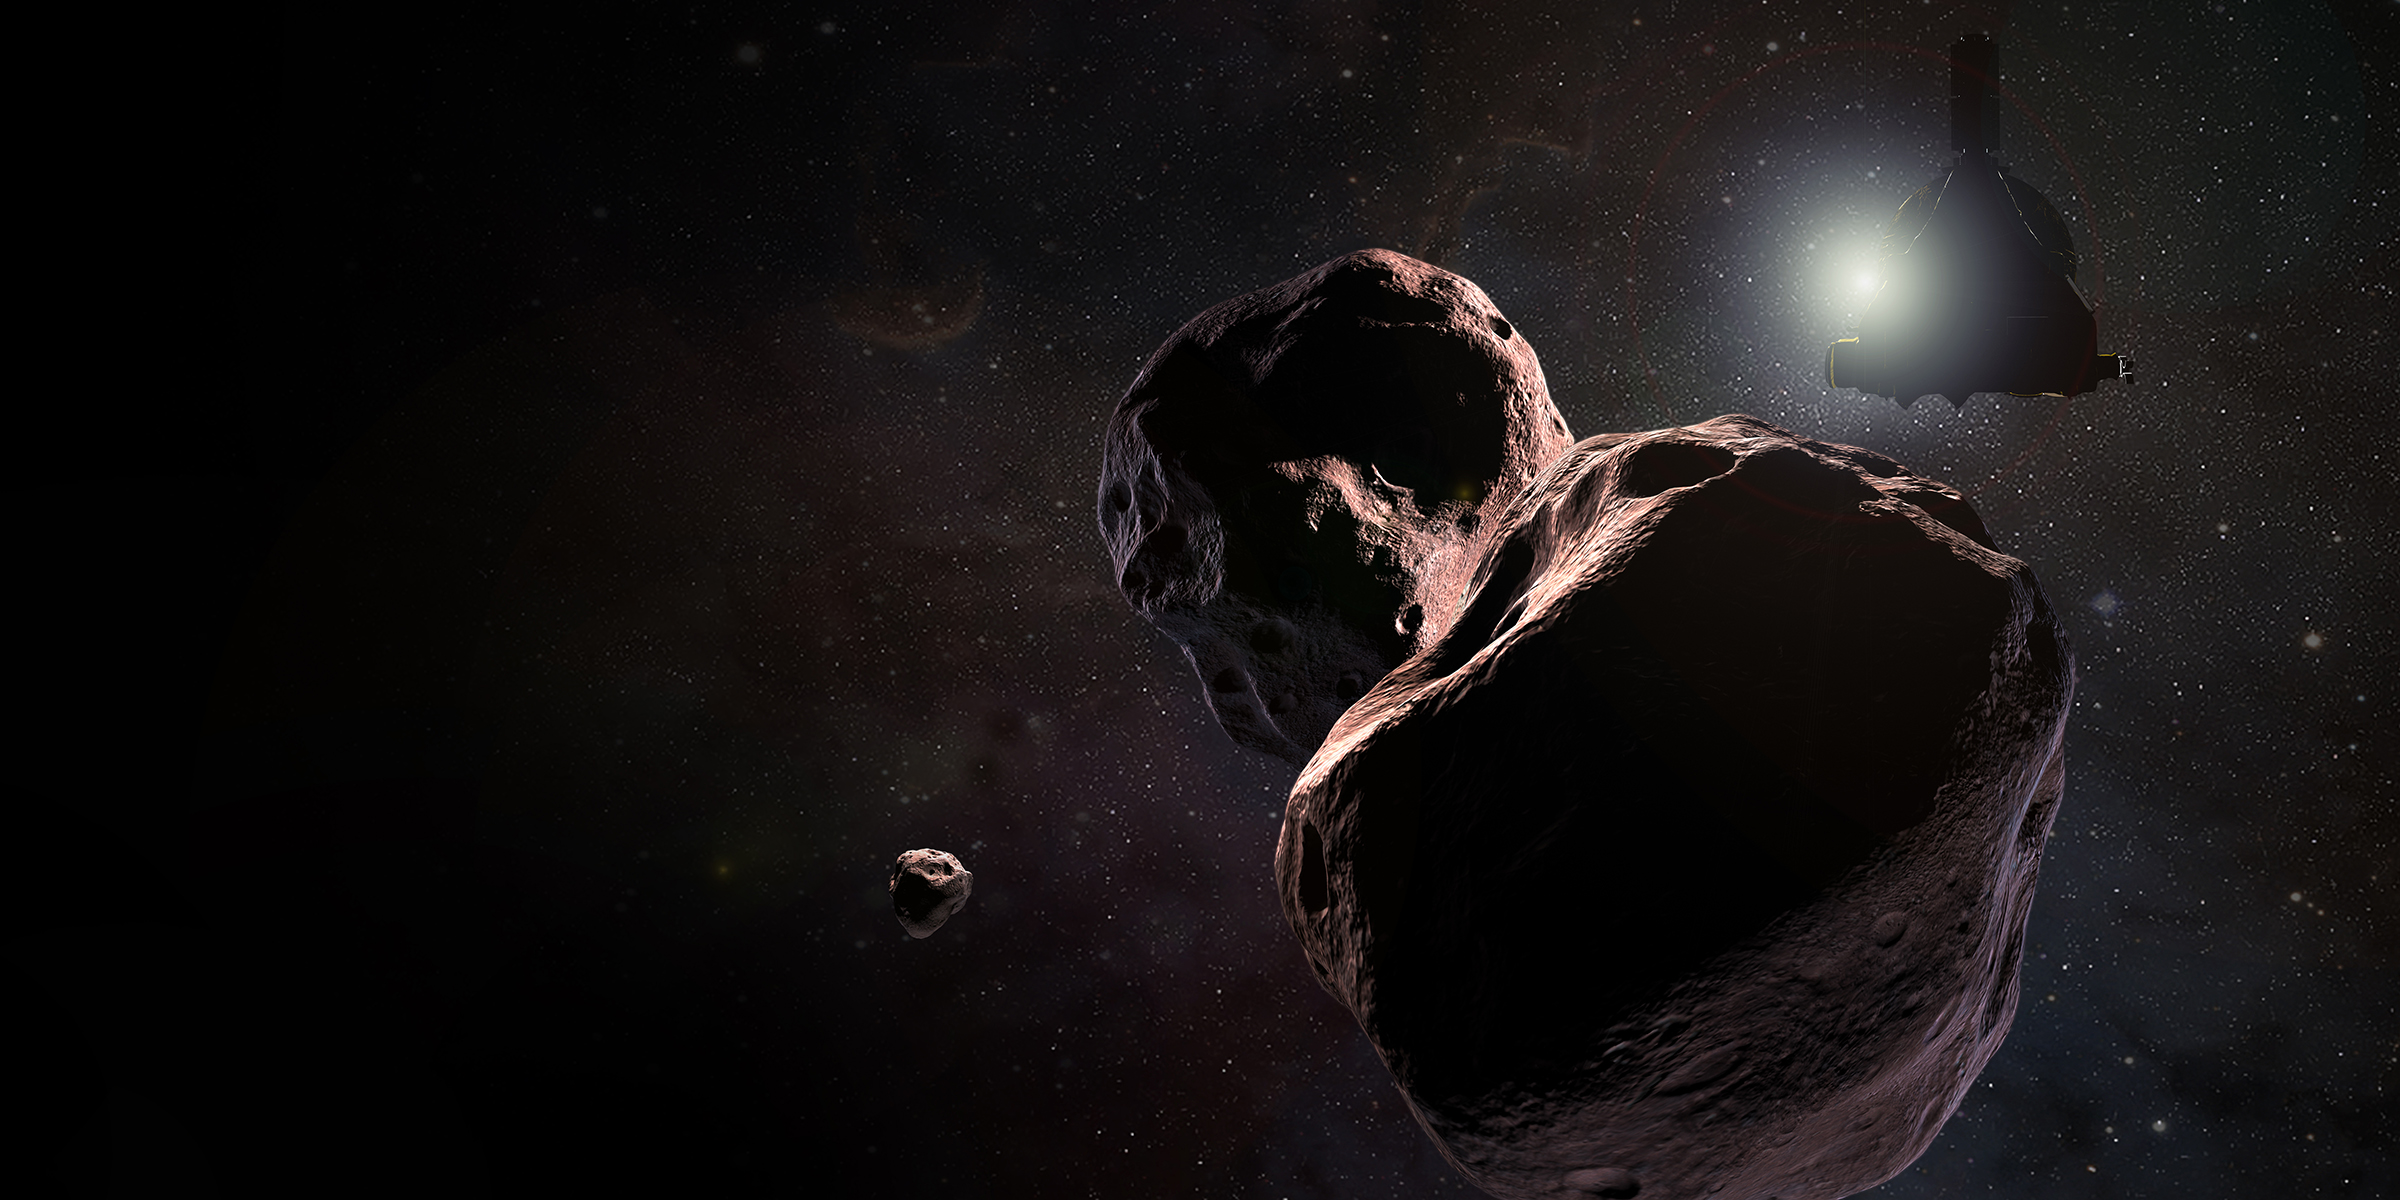 Artist's impression of NASA's New Horizons spacecraft encountering 2014 MU69, a Kuiper Belt object that orbits one billion miles or 1.6 billion kilometers beyond Pluto, on Jan. 1, 2019. Image Credit: NASA / JHUAPL / SwRI / Steve Gribben